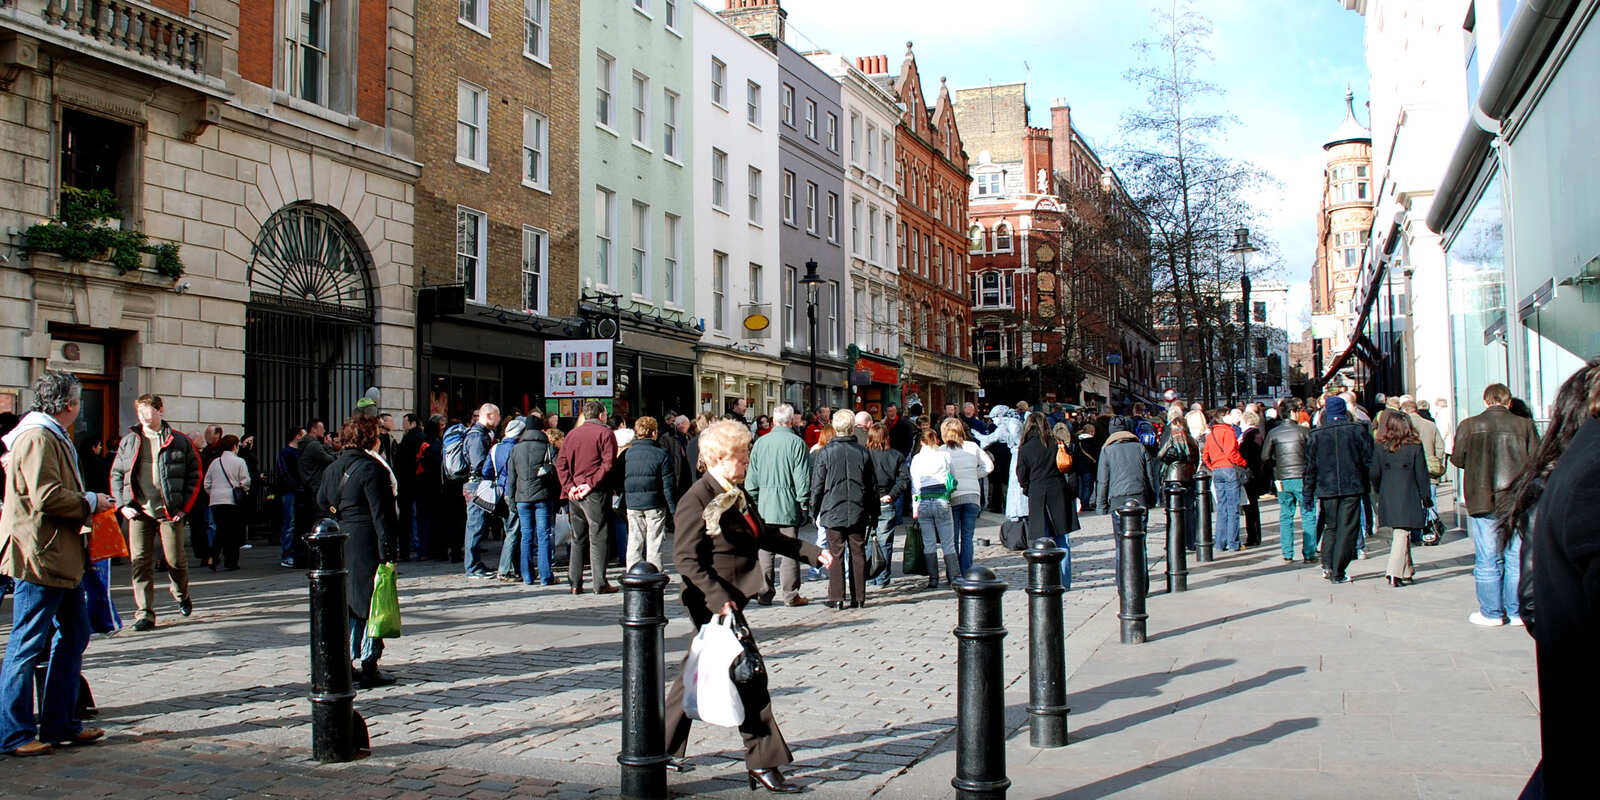 shoppen in london: die besten spots für london shopping